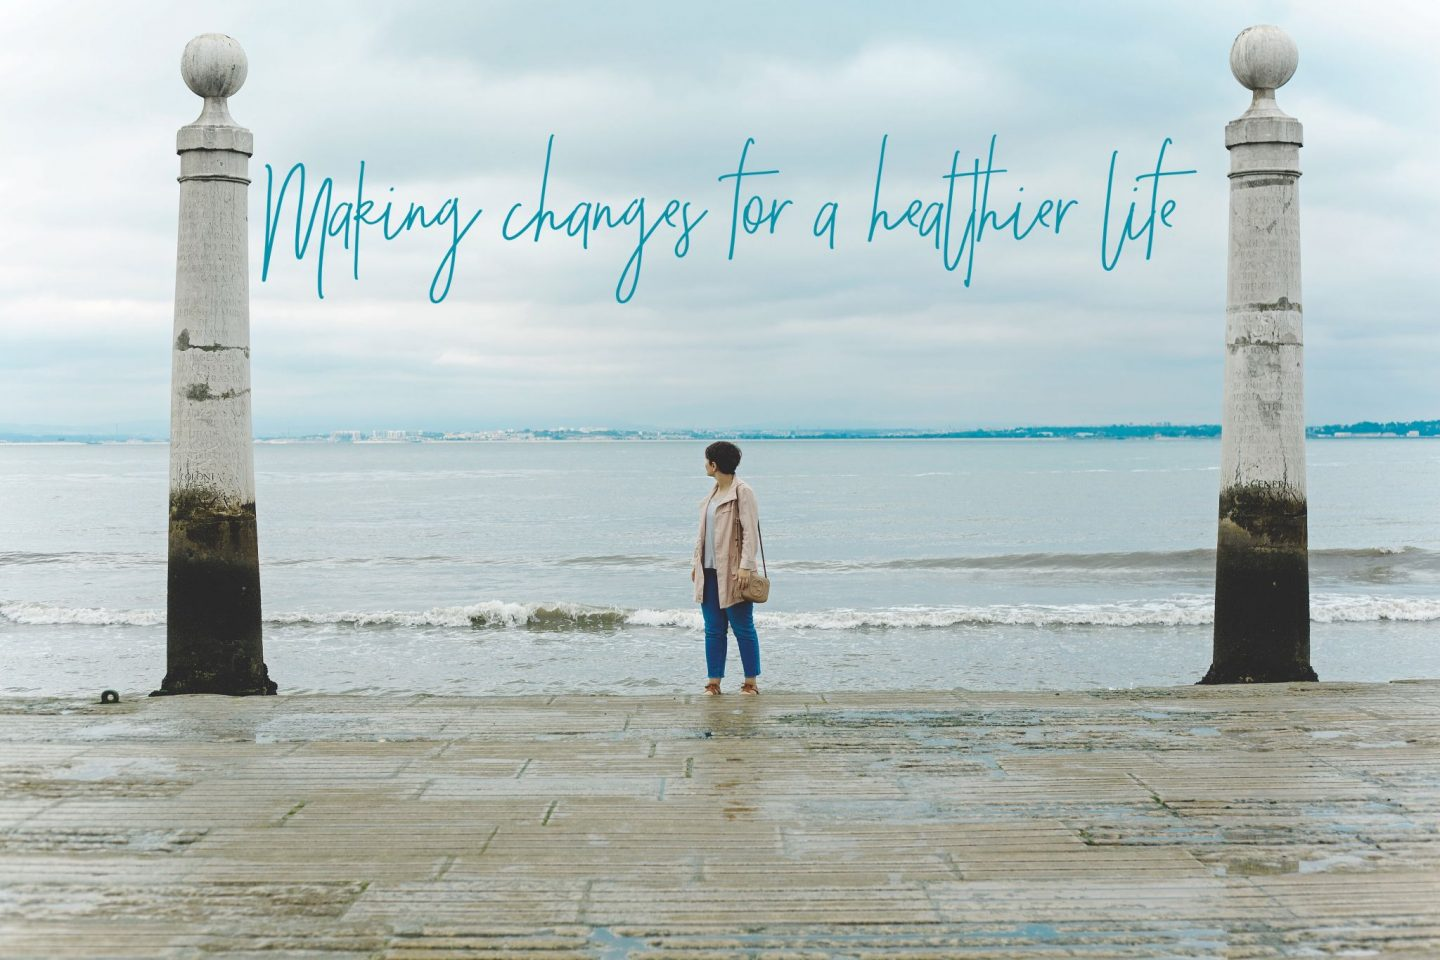 Making changes for a healthier life